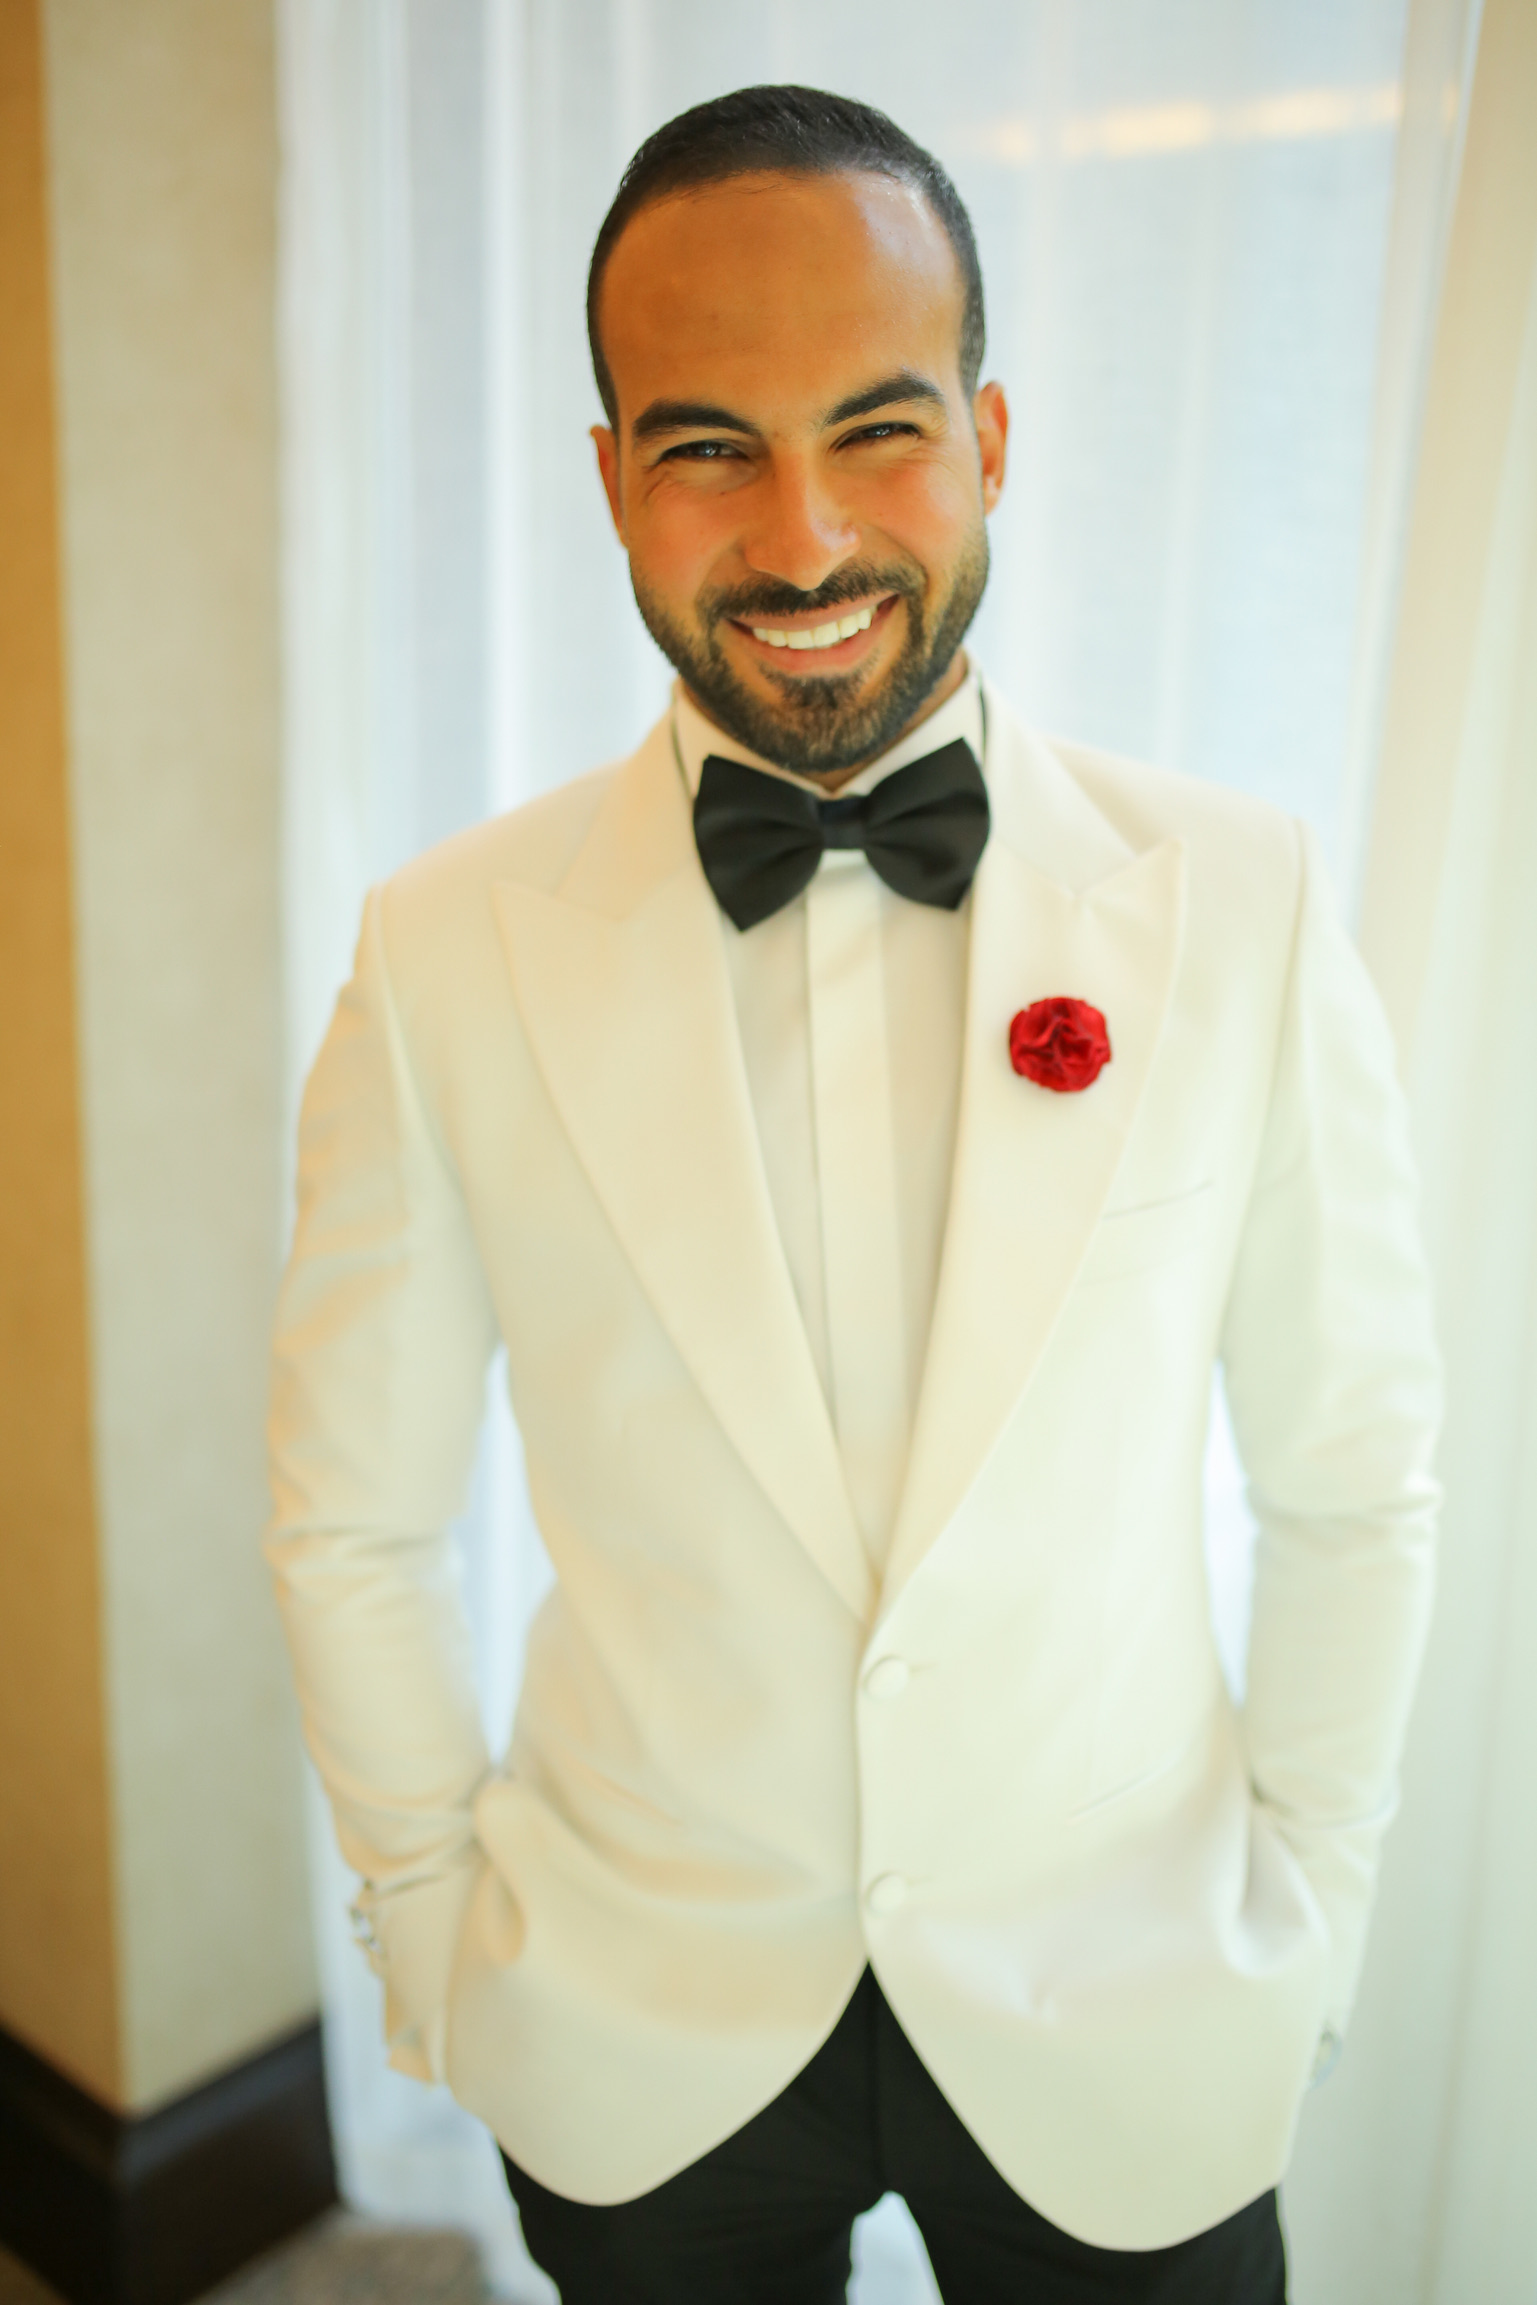 Egyptian Business Man and Motivational Speaker Aly Osman to Interview Richest Men in The World